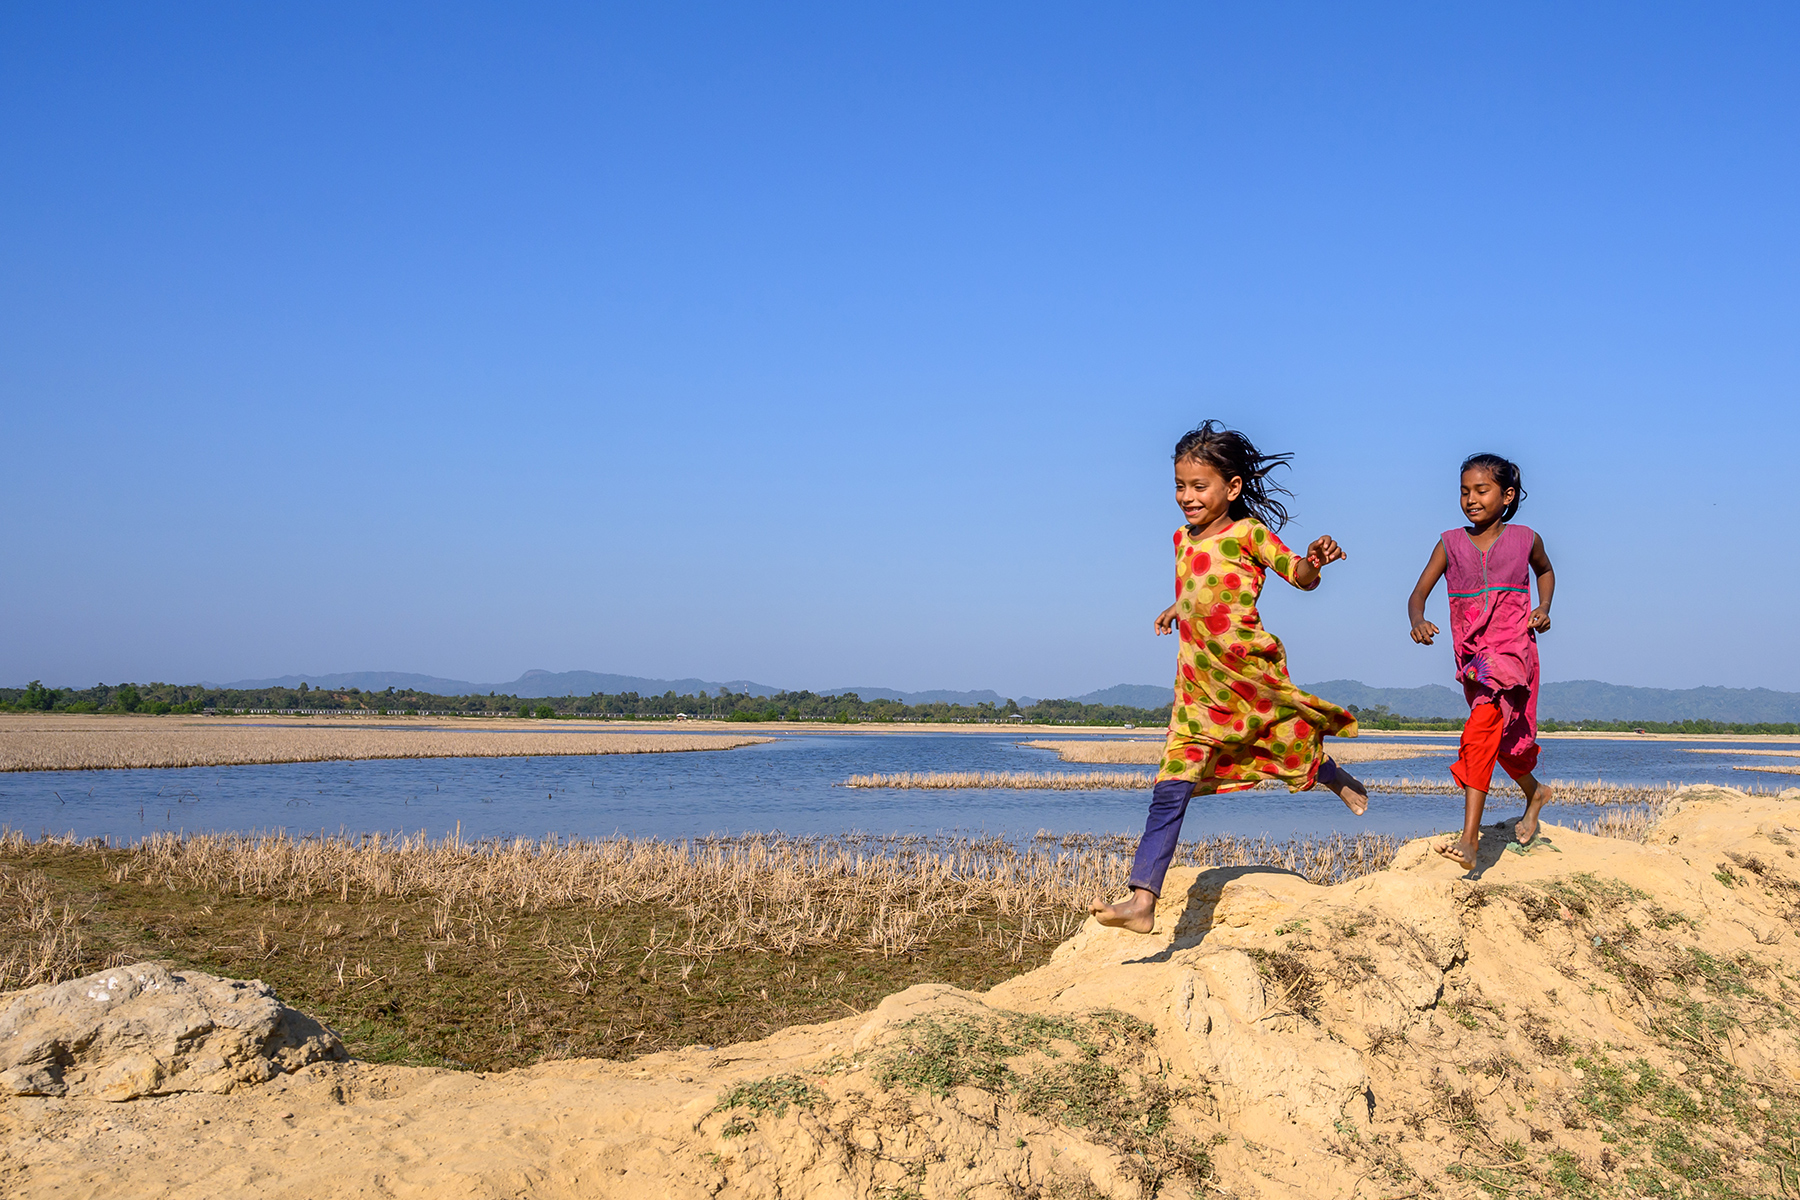 Children run along a lake in Bangladesh